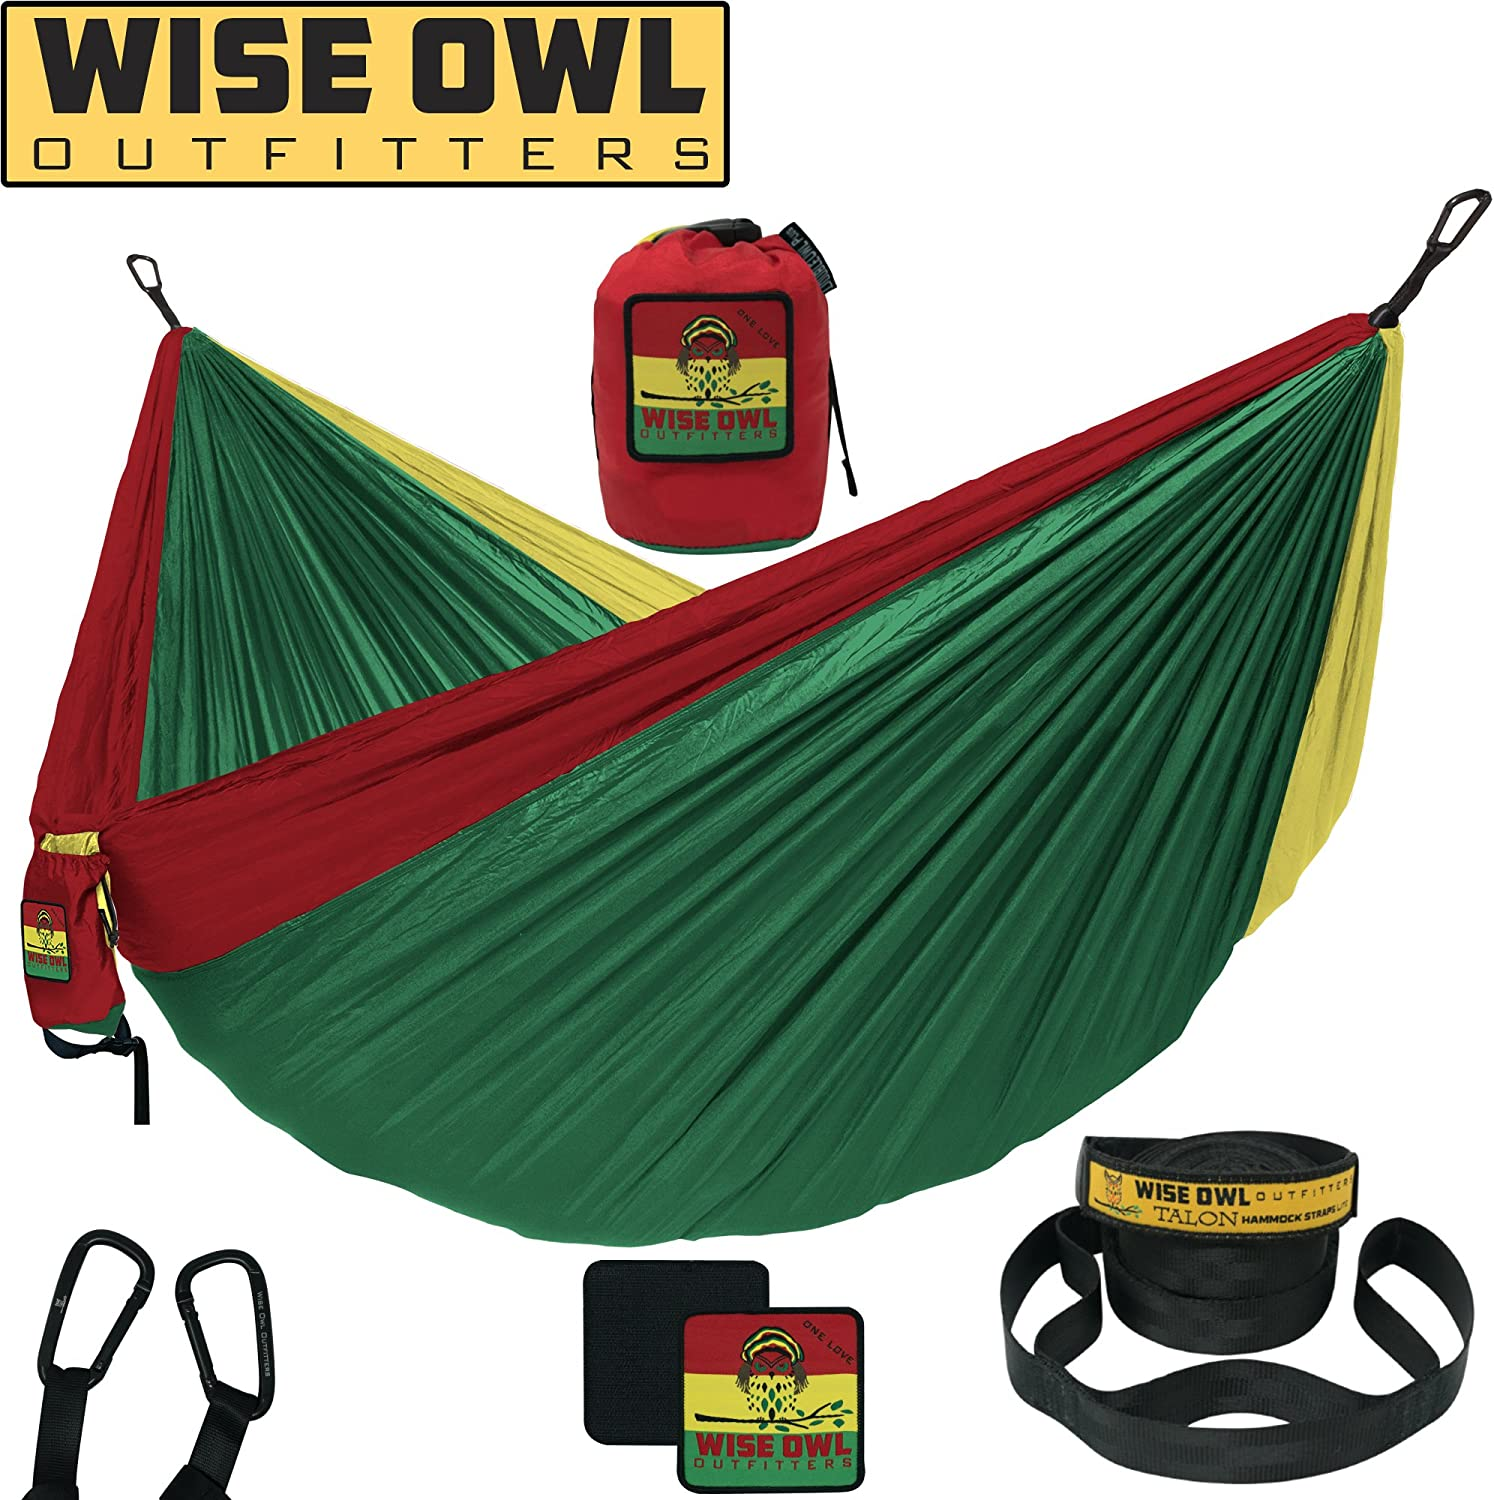 Wise Owl Outfitters Camping Hammock with Tree Straps Premium Double 2 Person Single 1 Person Portable Lightweight Heavy Duty Parachute Hammocks Best Camp Gear Indoor Outdoor Beach SO OL